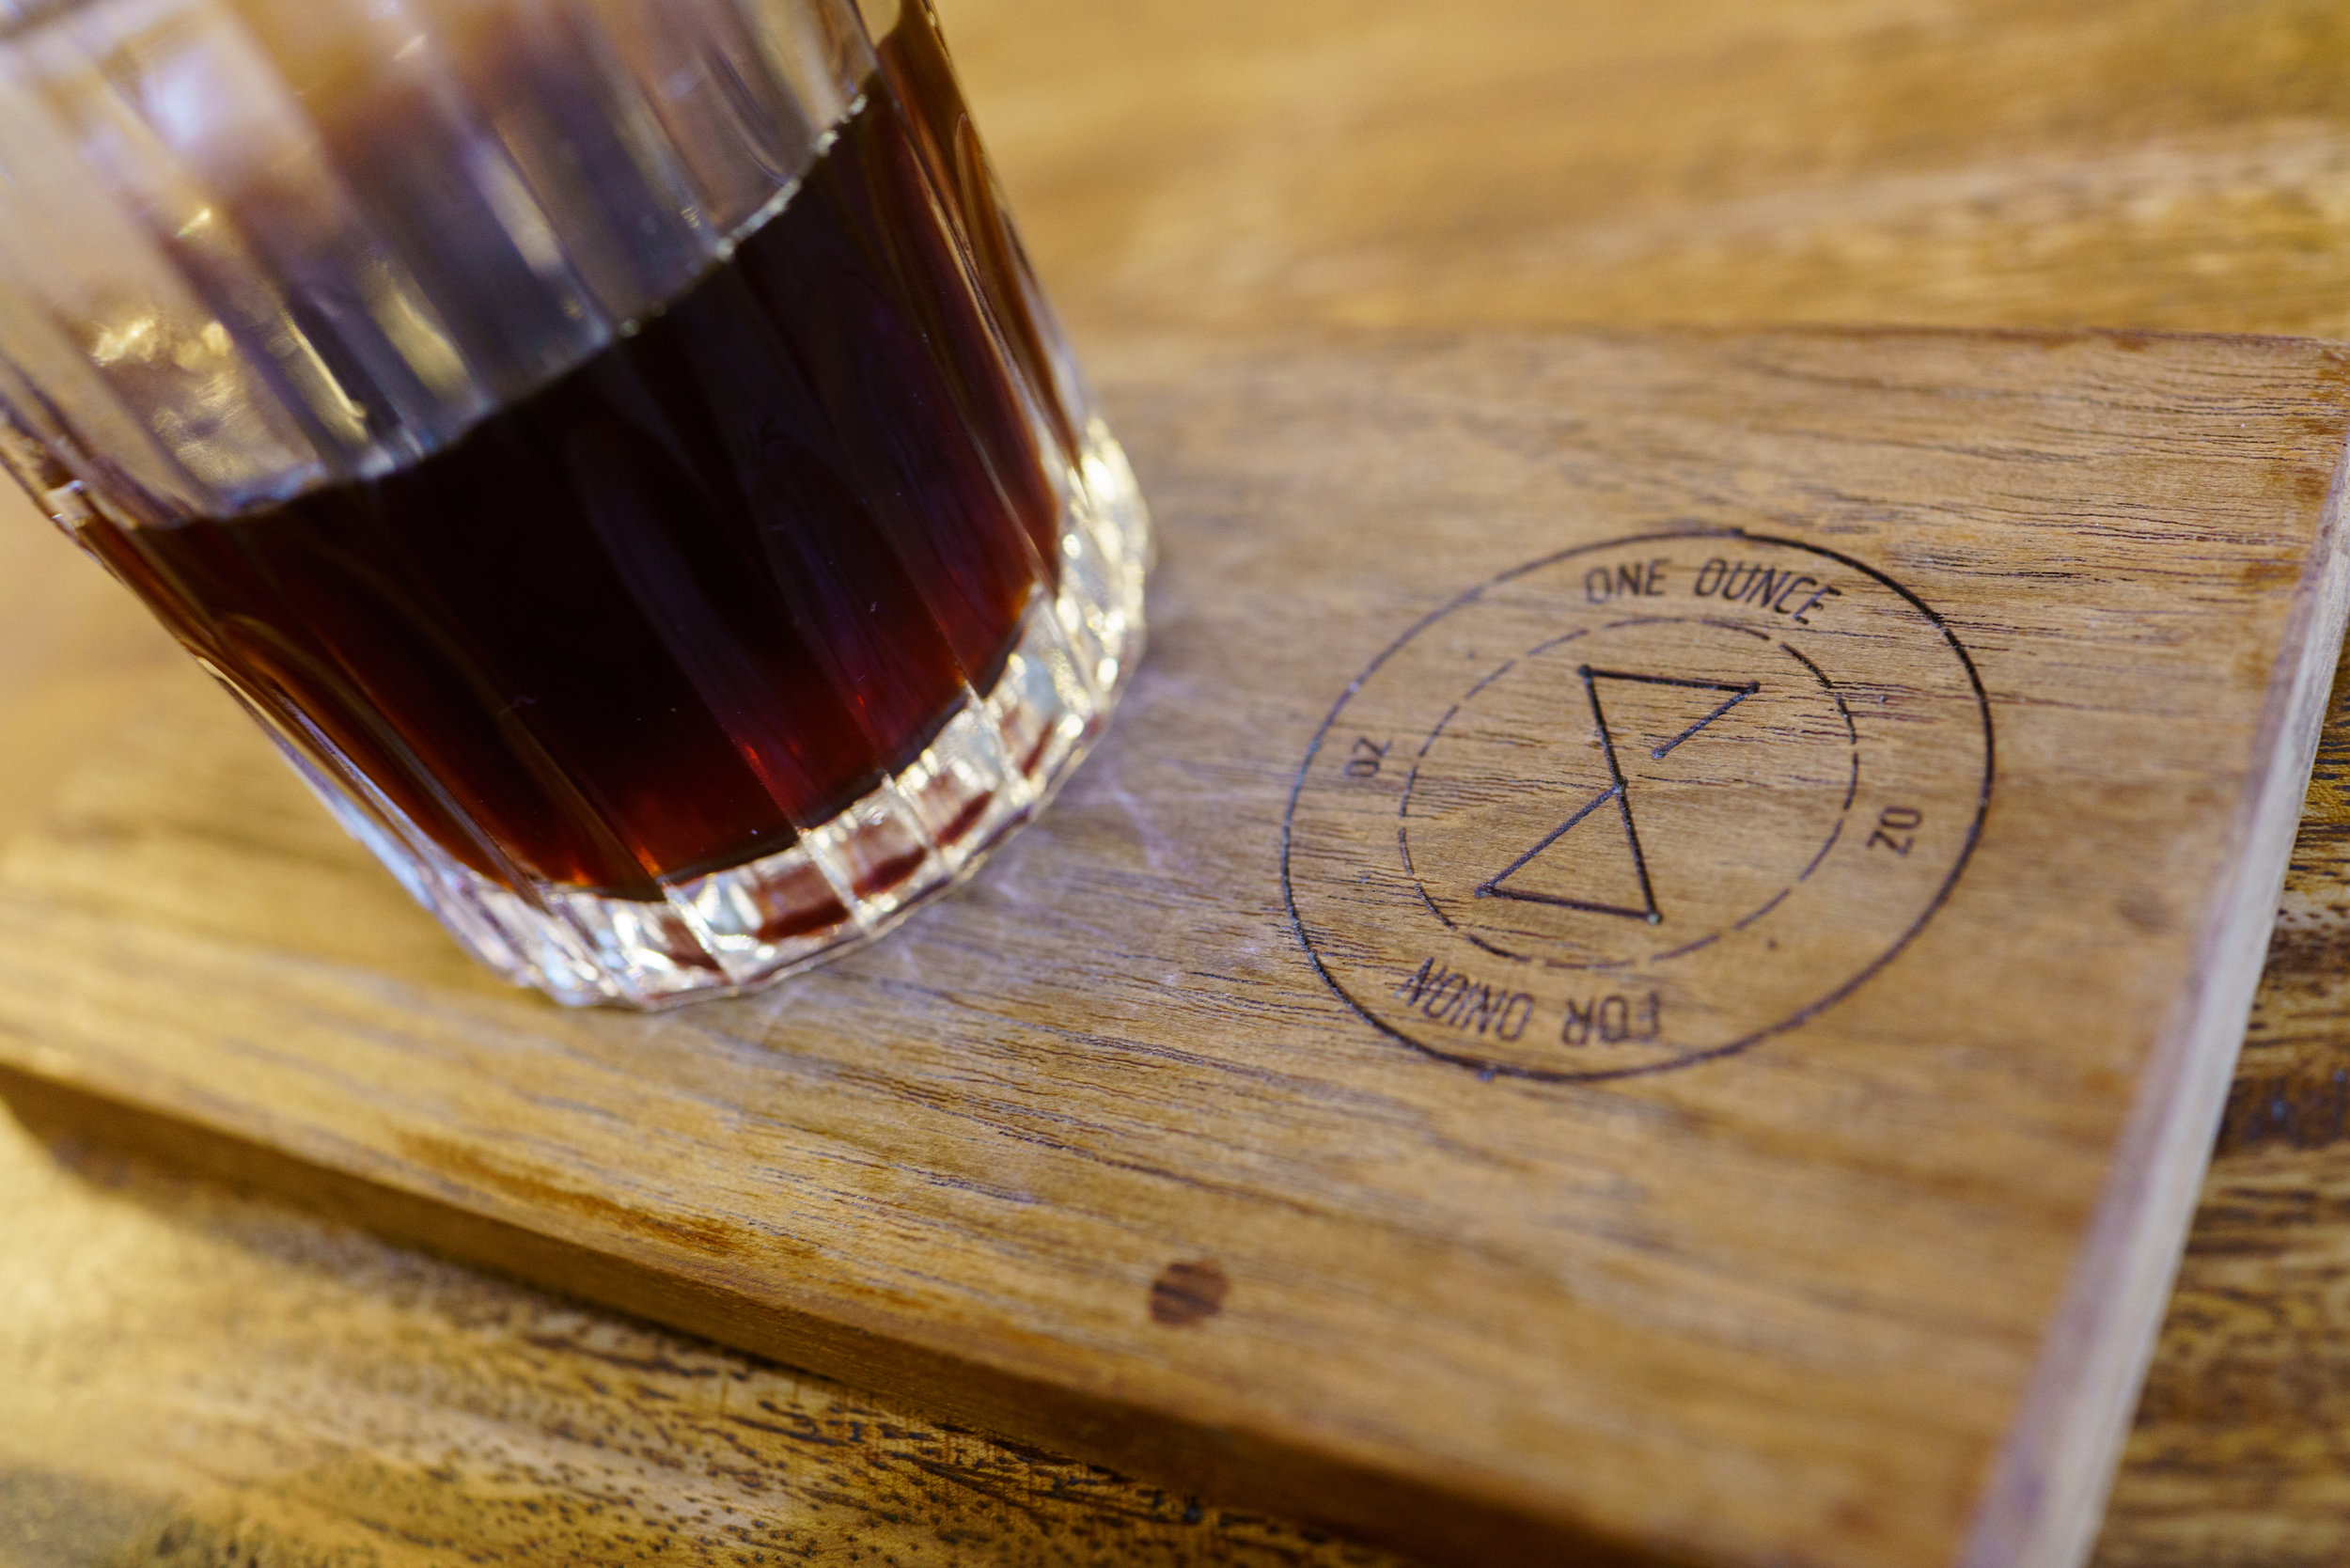 A pourover at One Ounce for Onion in Bangkok